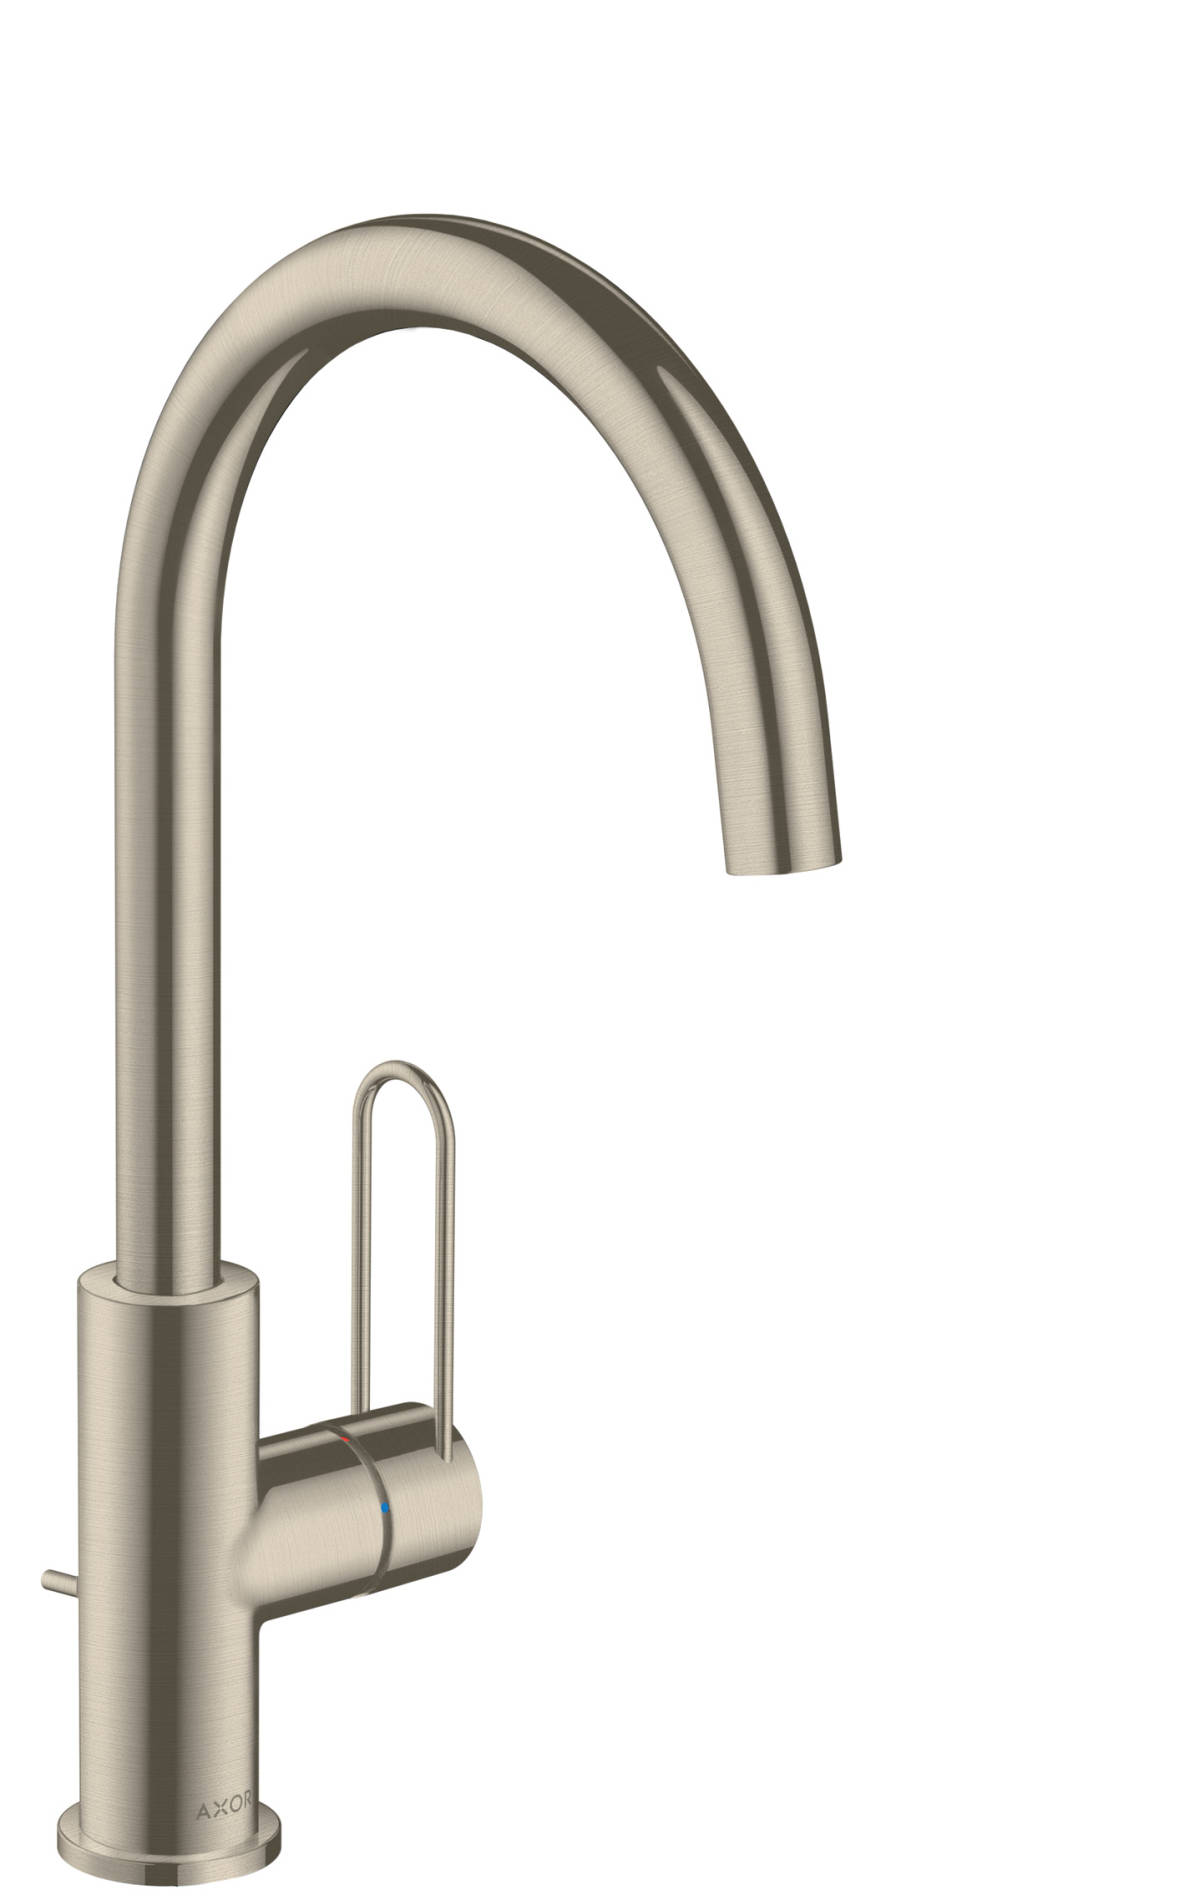 Single lever basin mixer 240 with loop handle and pop-up waste set, Brushed Nickel, 38036820